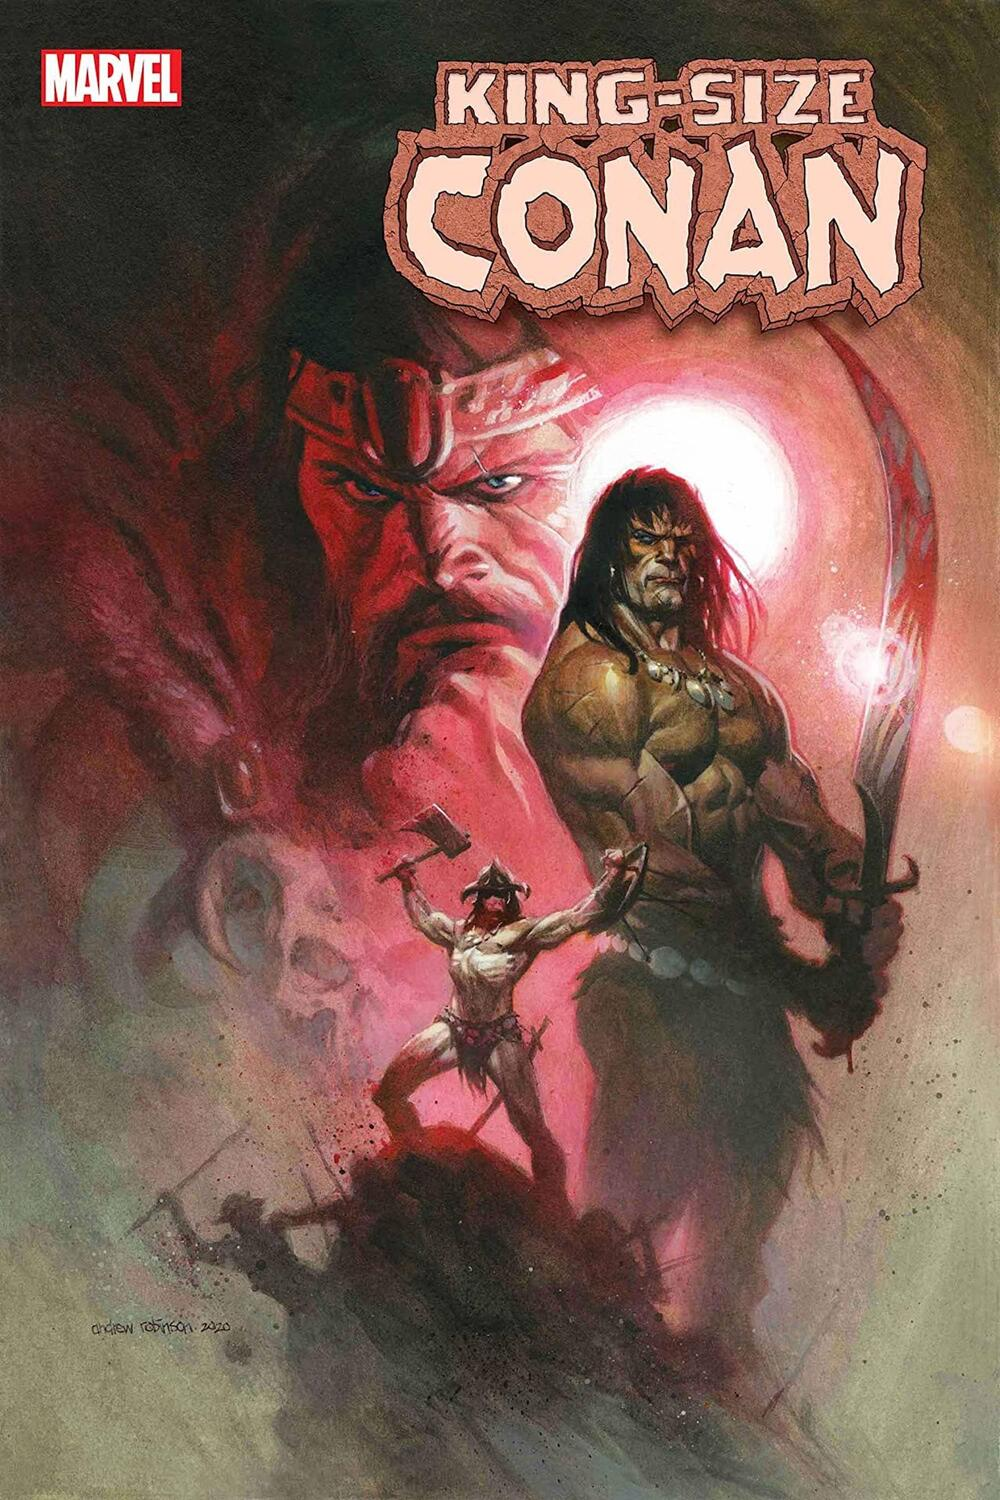 KING-SIZE CONAN #1 cover by Andrew C. Robinson